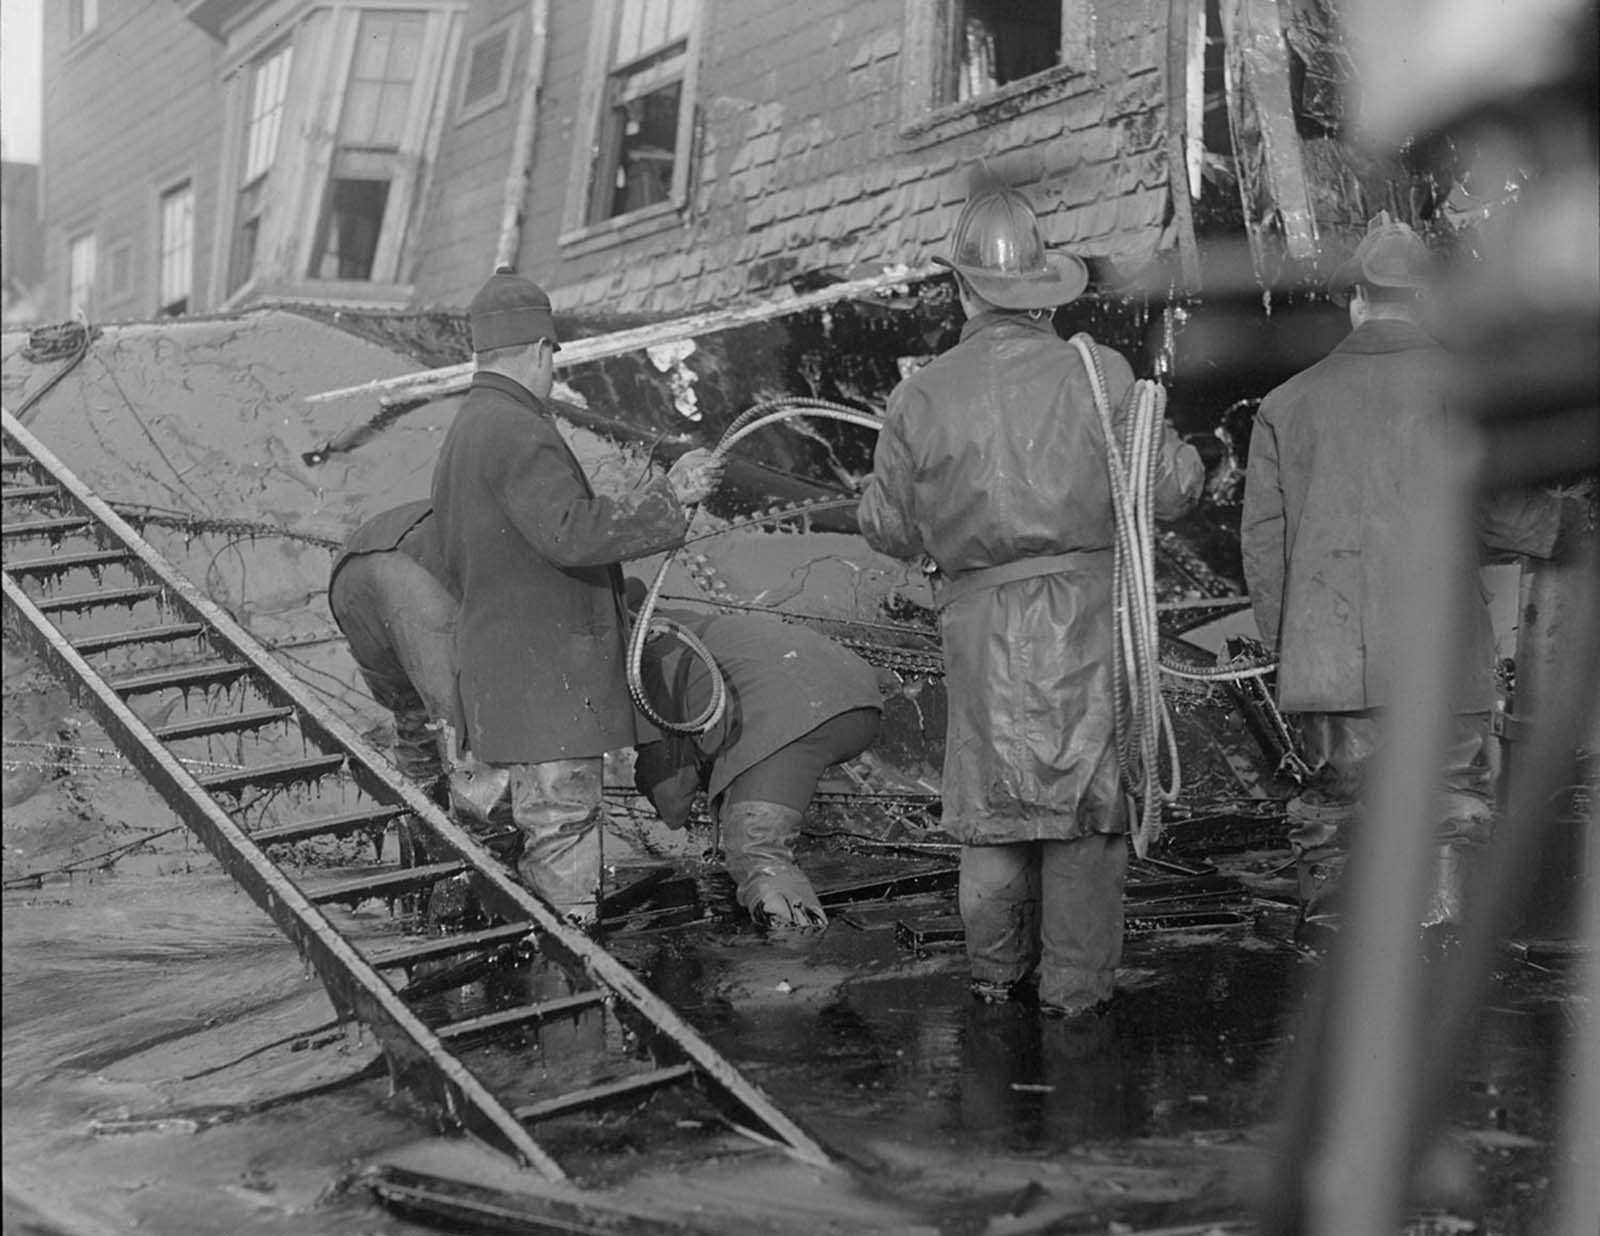 Firemen standing in thick molasses after the disaster. Muck drips off the ladder's rungs.